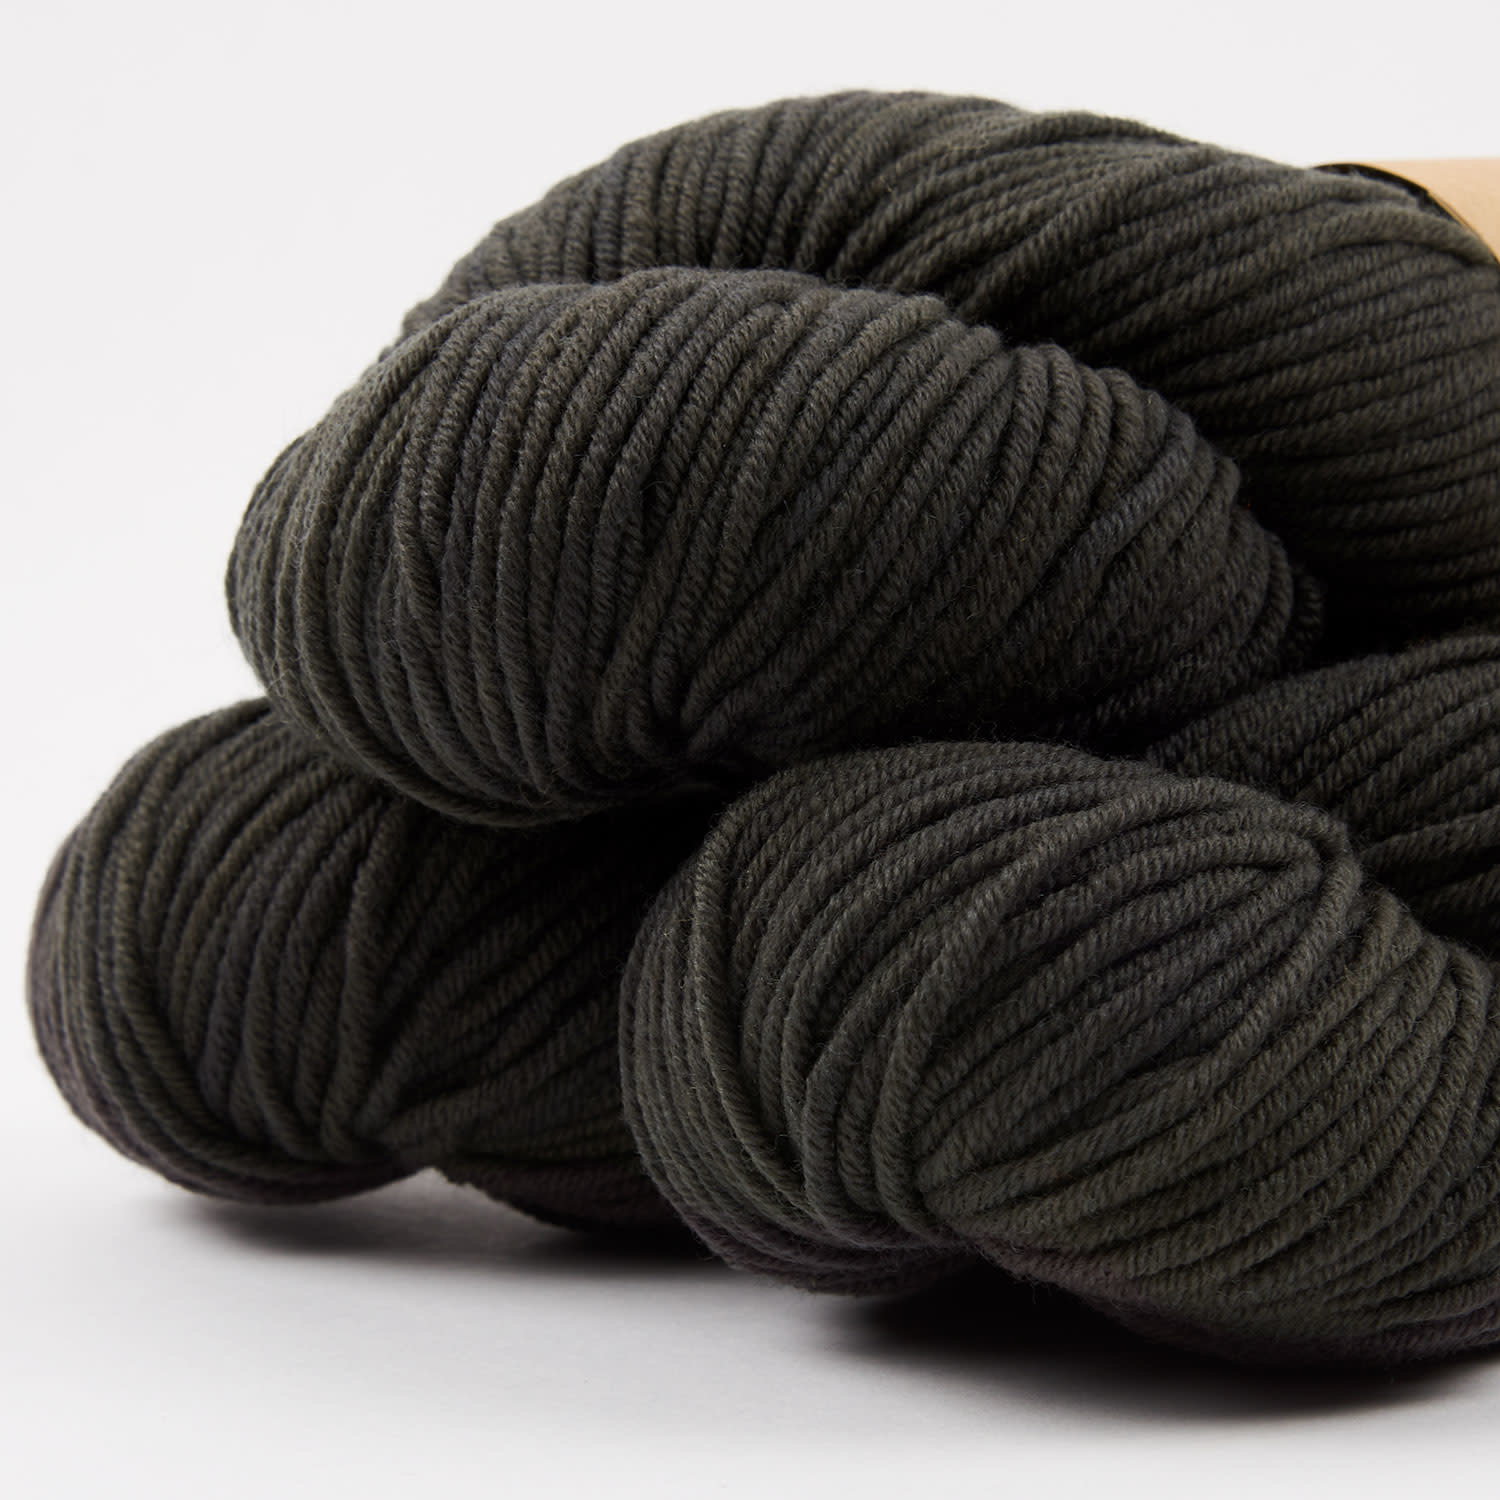 Tíntica MERINO WORSTED - SHADOWS IN THE WOODS